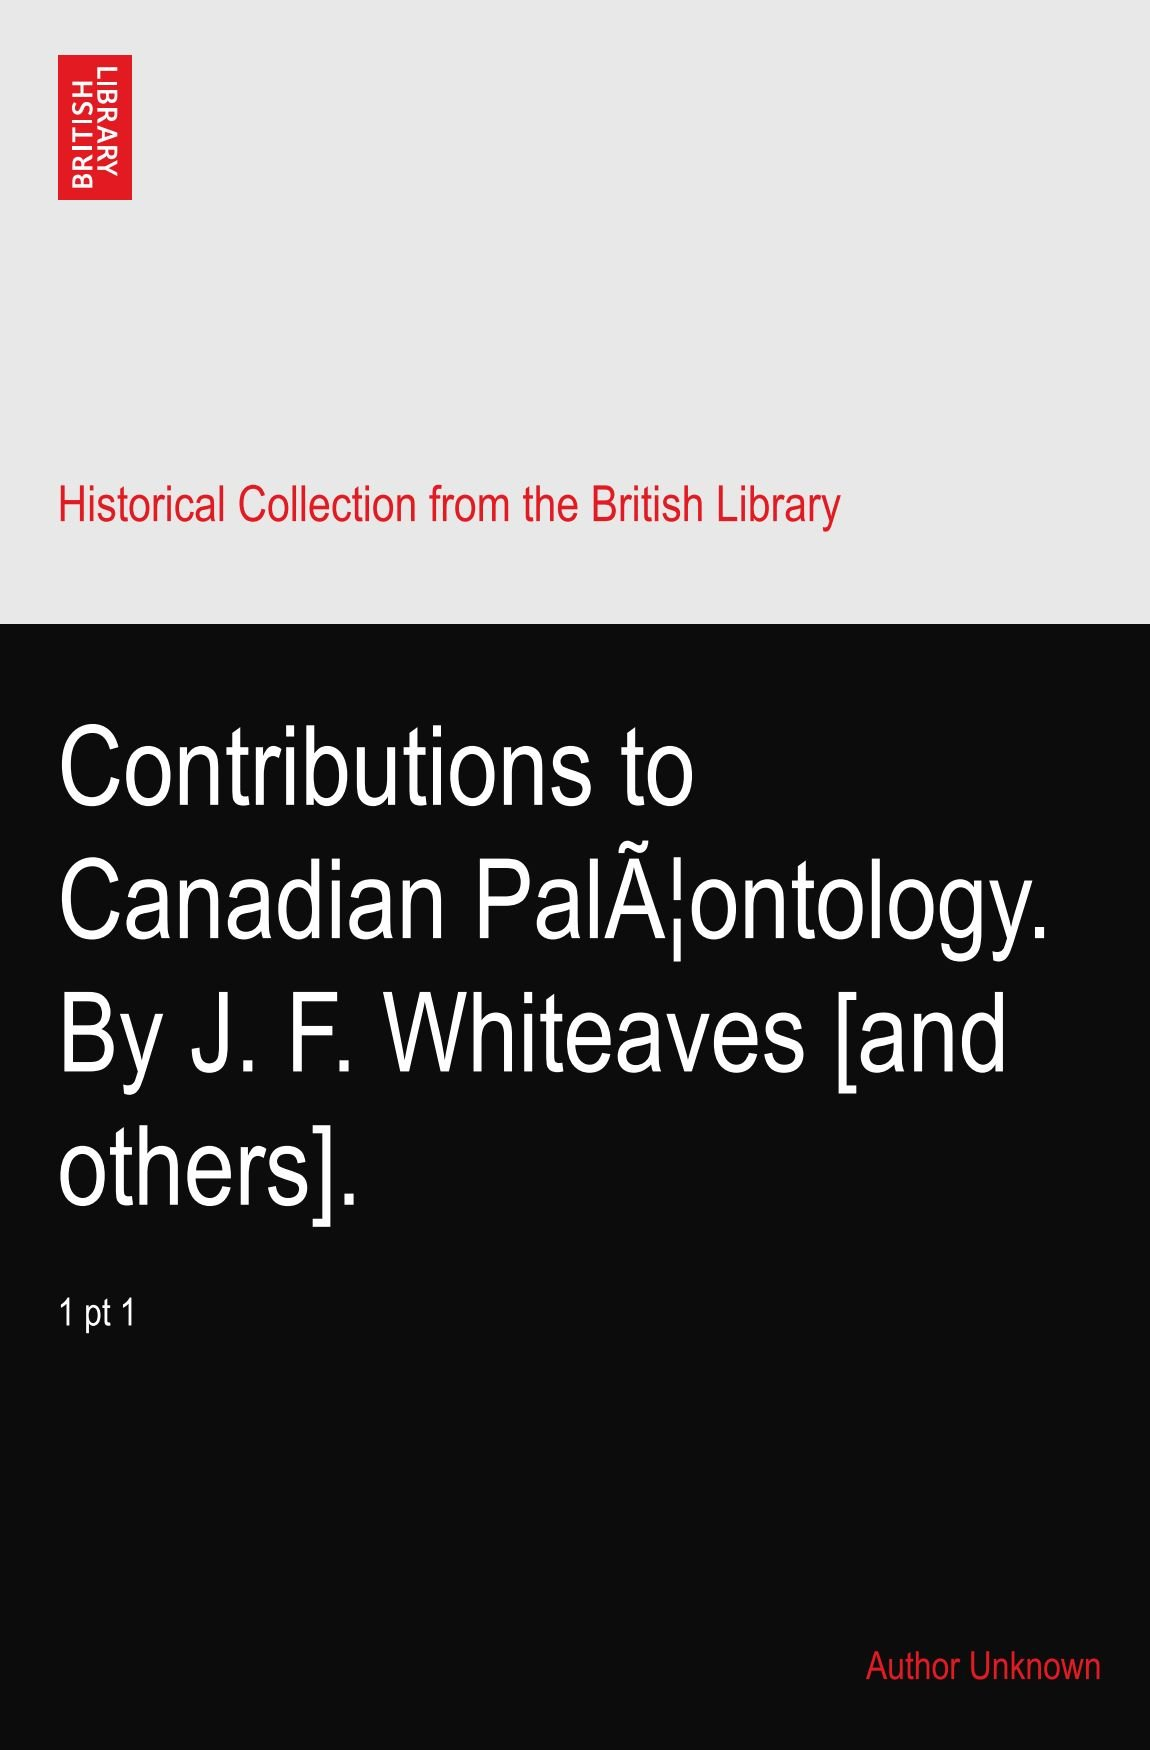 Contributions to Canadian Palæontology. By J. F. Whiteaves [and others].: 1 pt 1 ebook